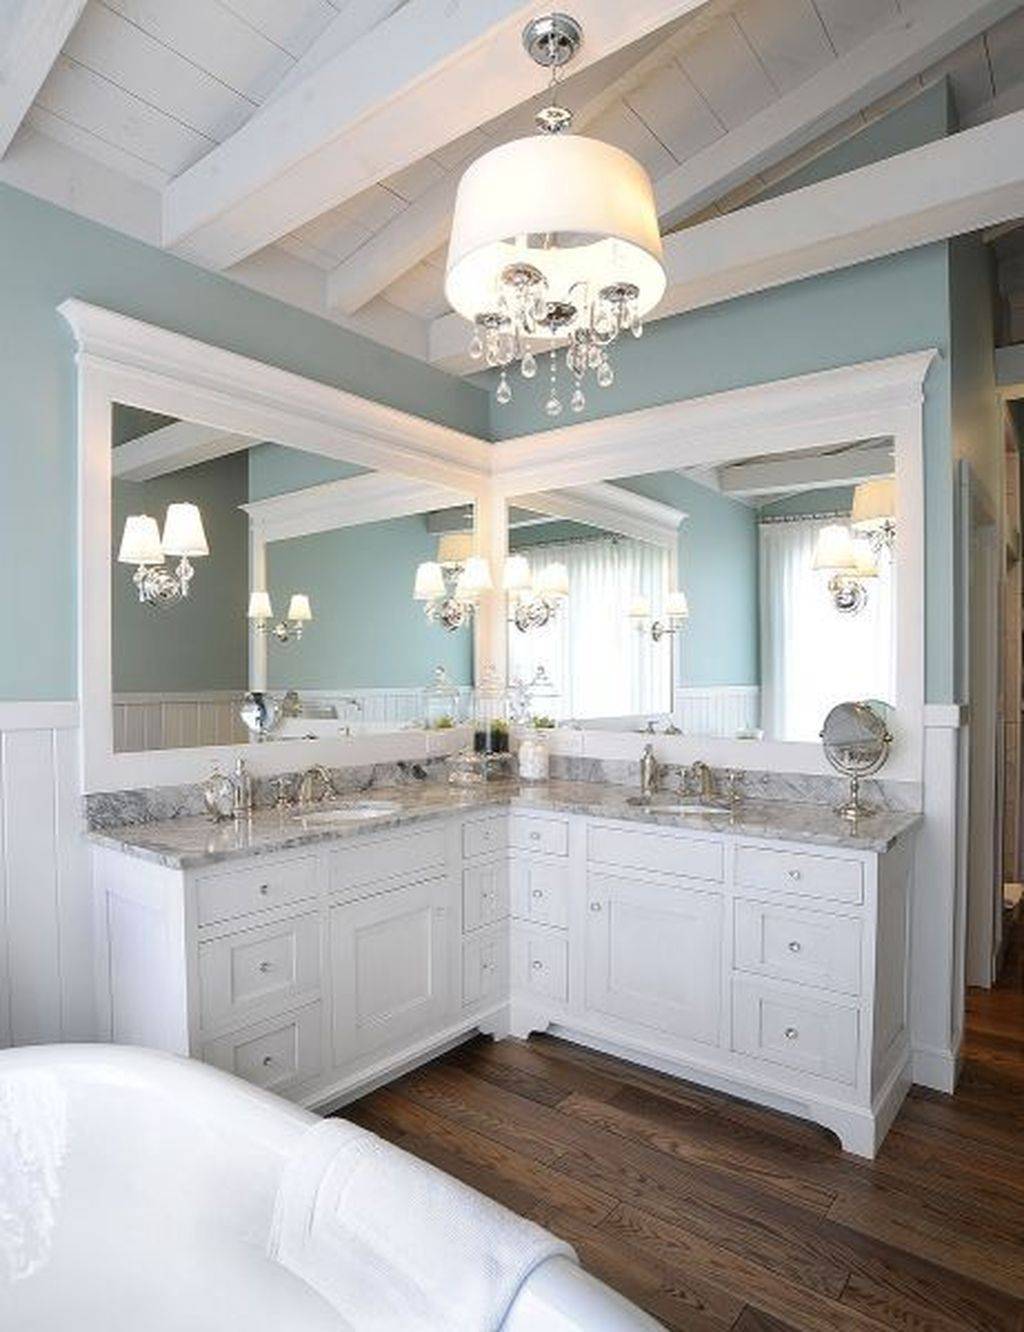 46 Awesome Bathroom Vanity Mirror Design Ideas – HOMYFEED